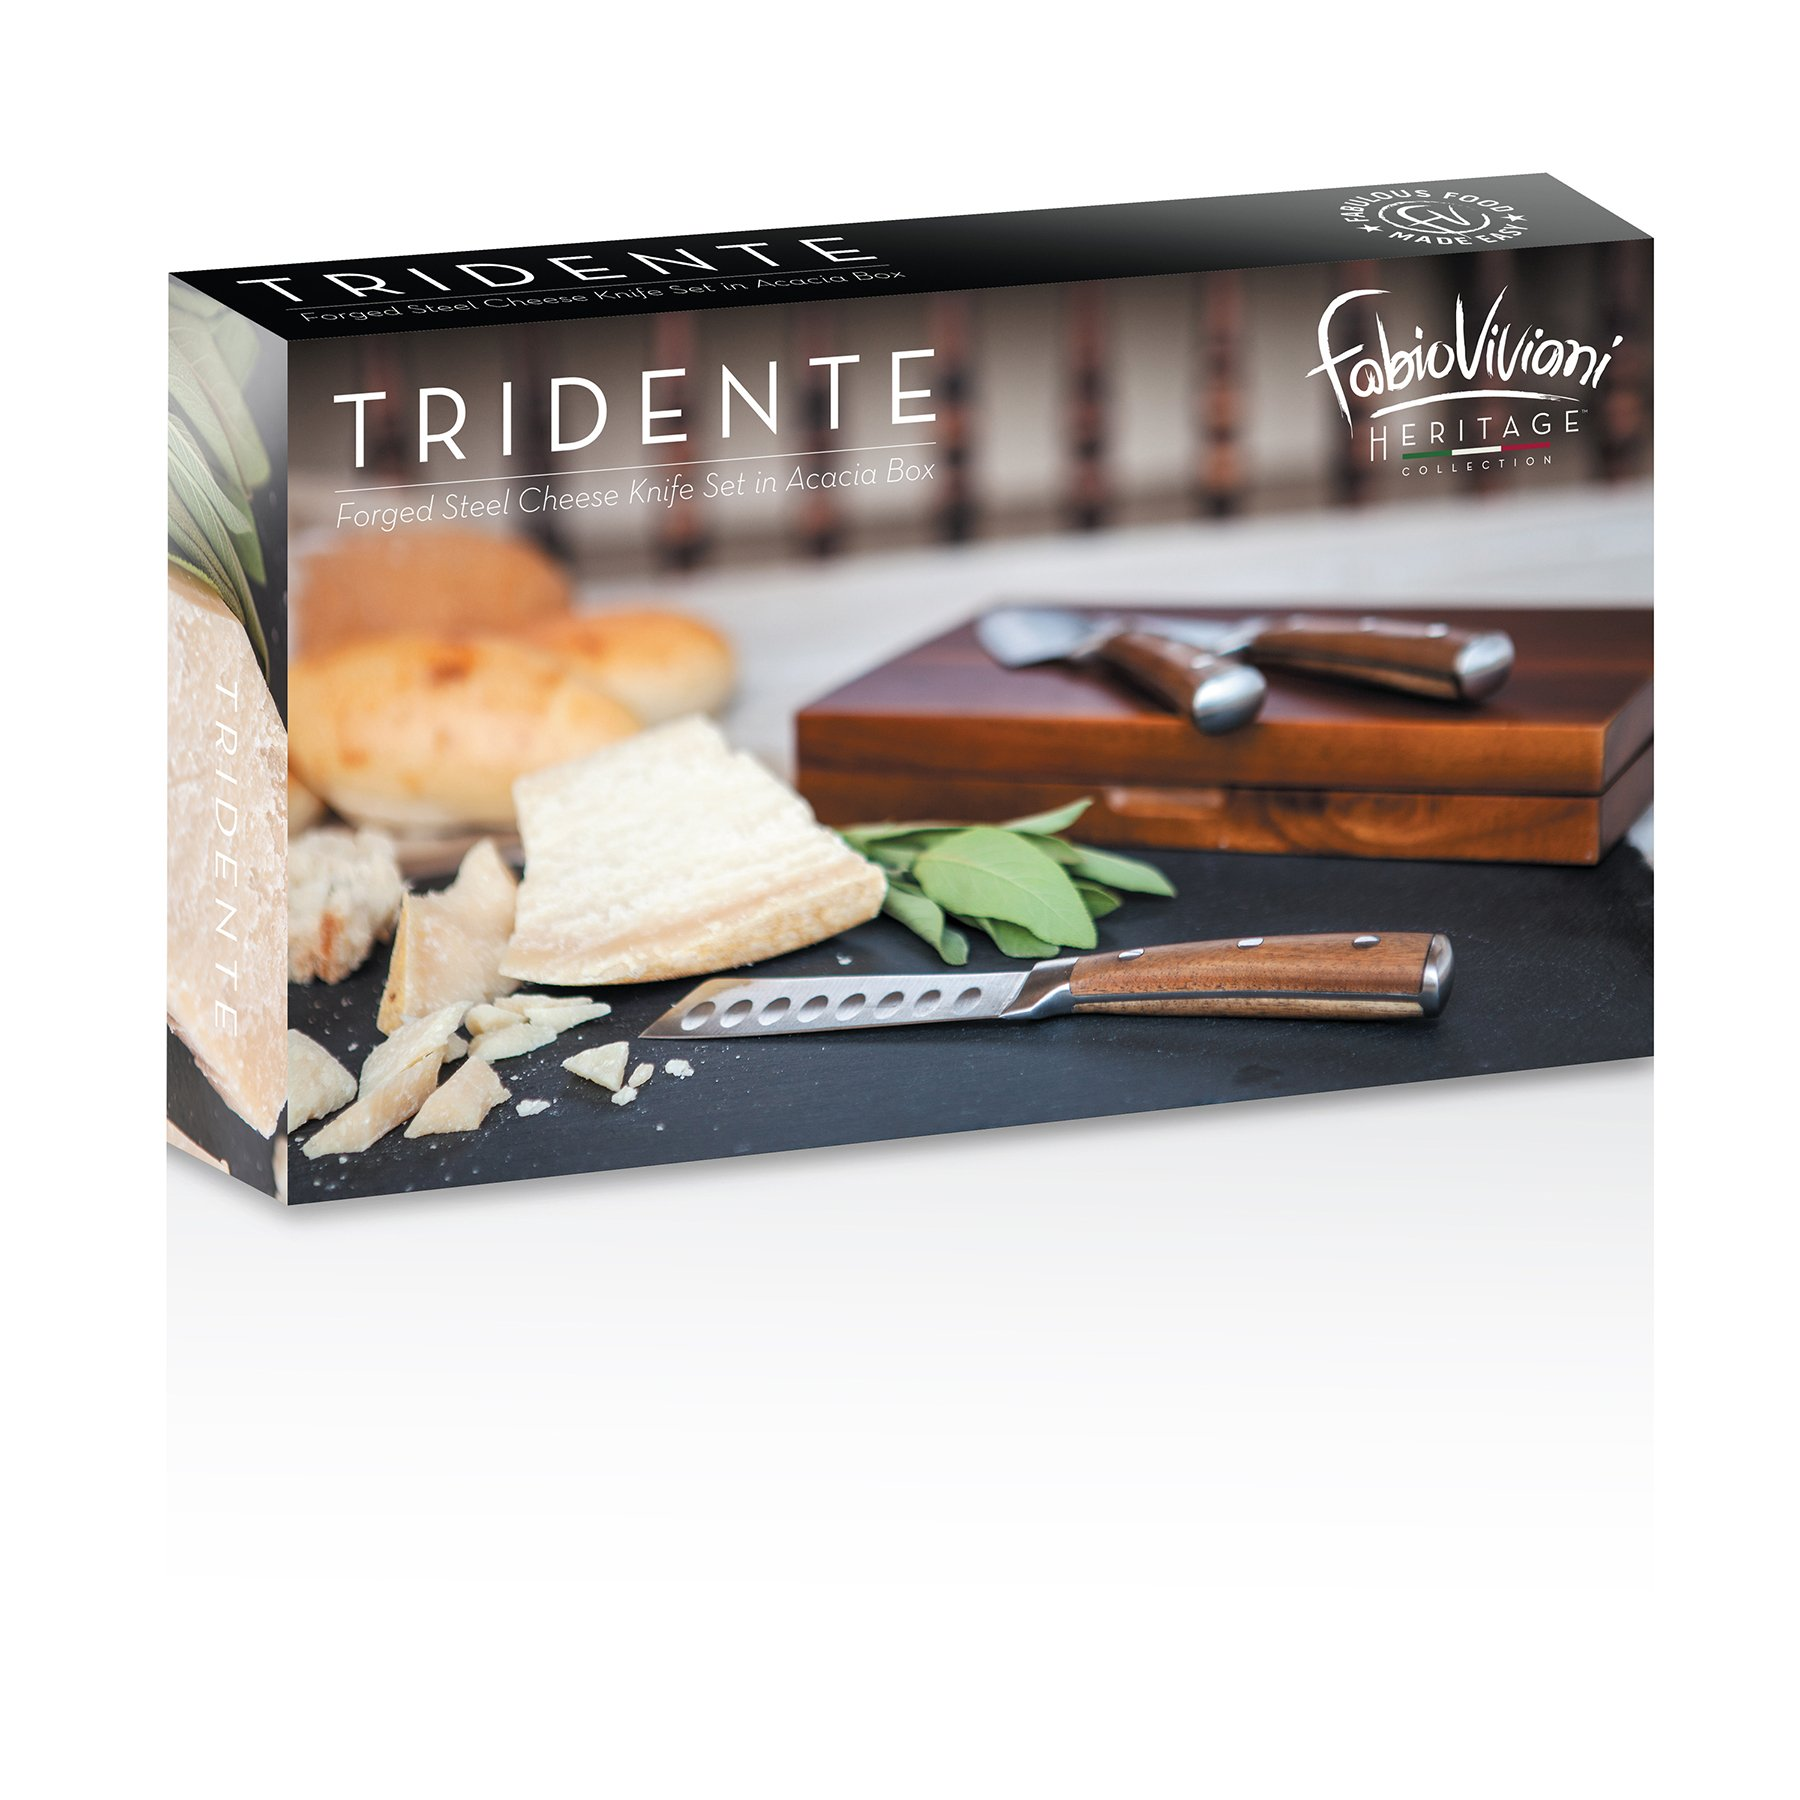 TOSCANA - a Picnic Time Brand Fabio Viviani Tridente Boxed Cheese Knives, Set of 3 by TOSCANA - a Picnic Time brand (Image #4)